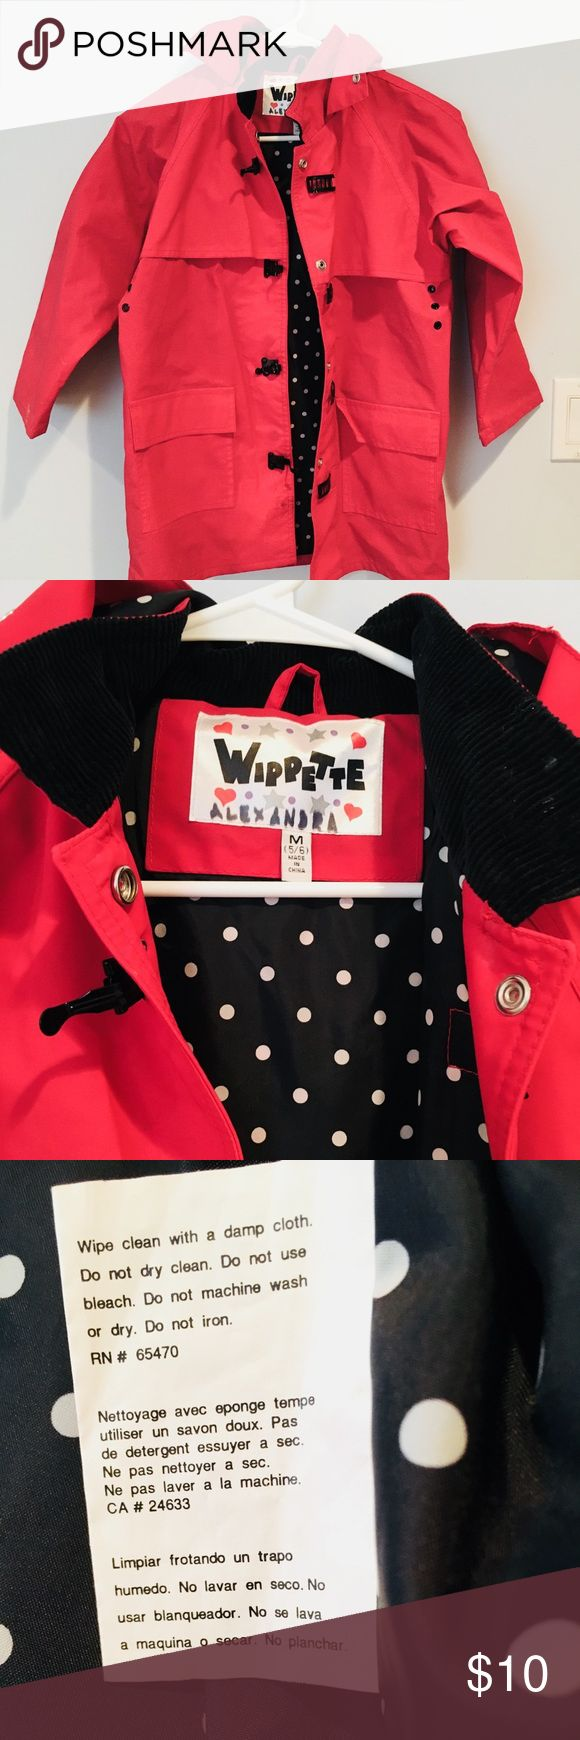 Girls Red Rain Parka size M (5-6) Wippette brand Girls rain parka with black and white dotted lining. (Name is written on the label) wippette Jackets & Coats Raincoats